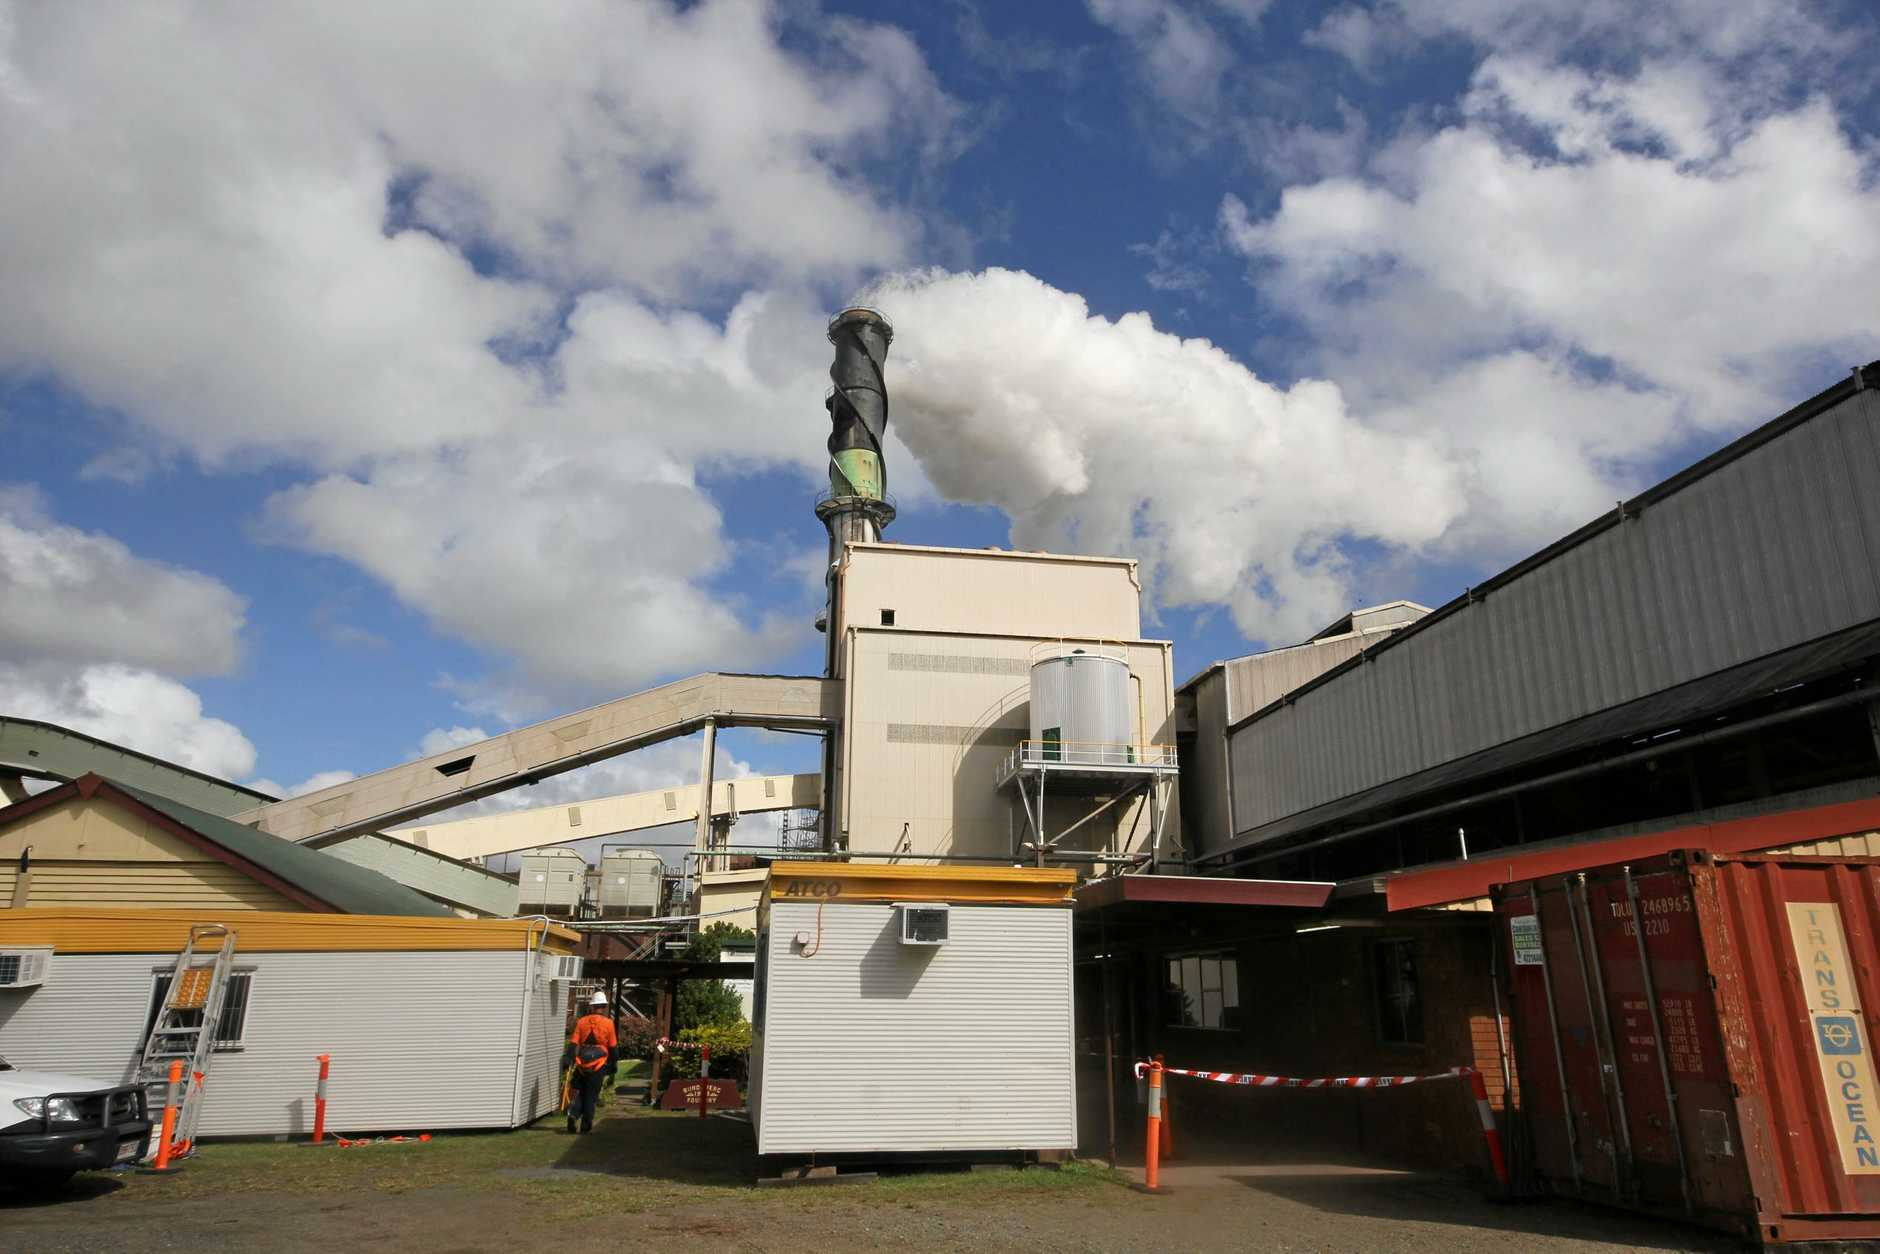 THE Proserpine sugar mill as we know it can trace its origins back to 1897.